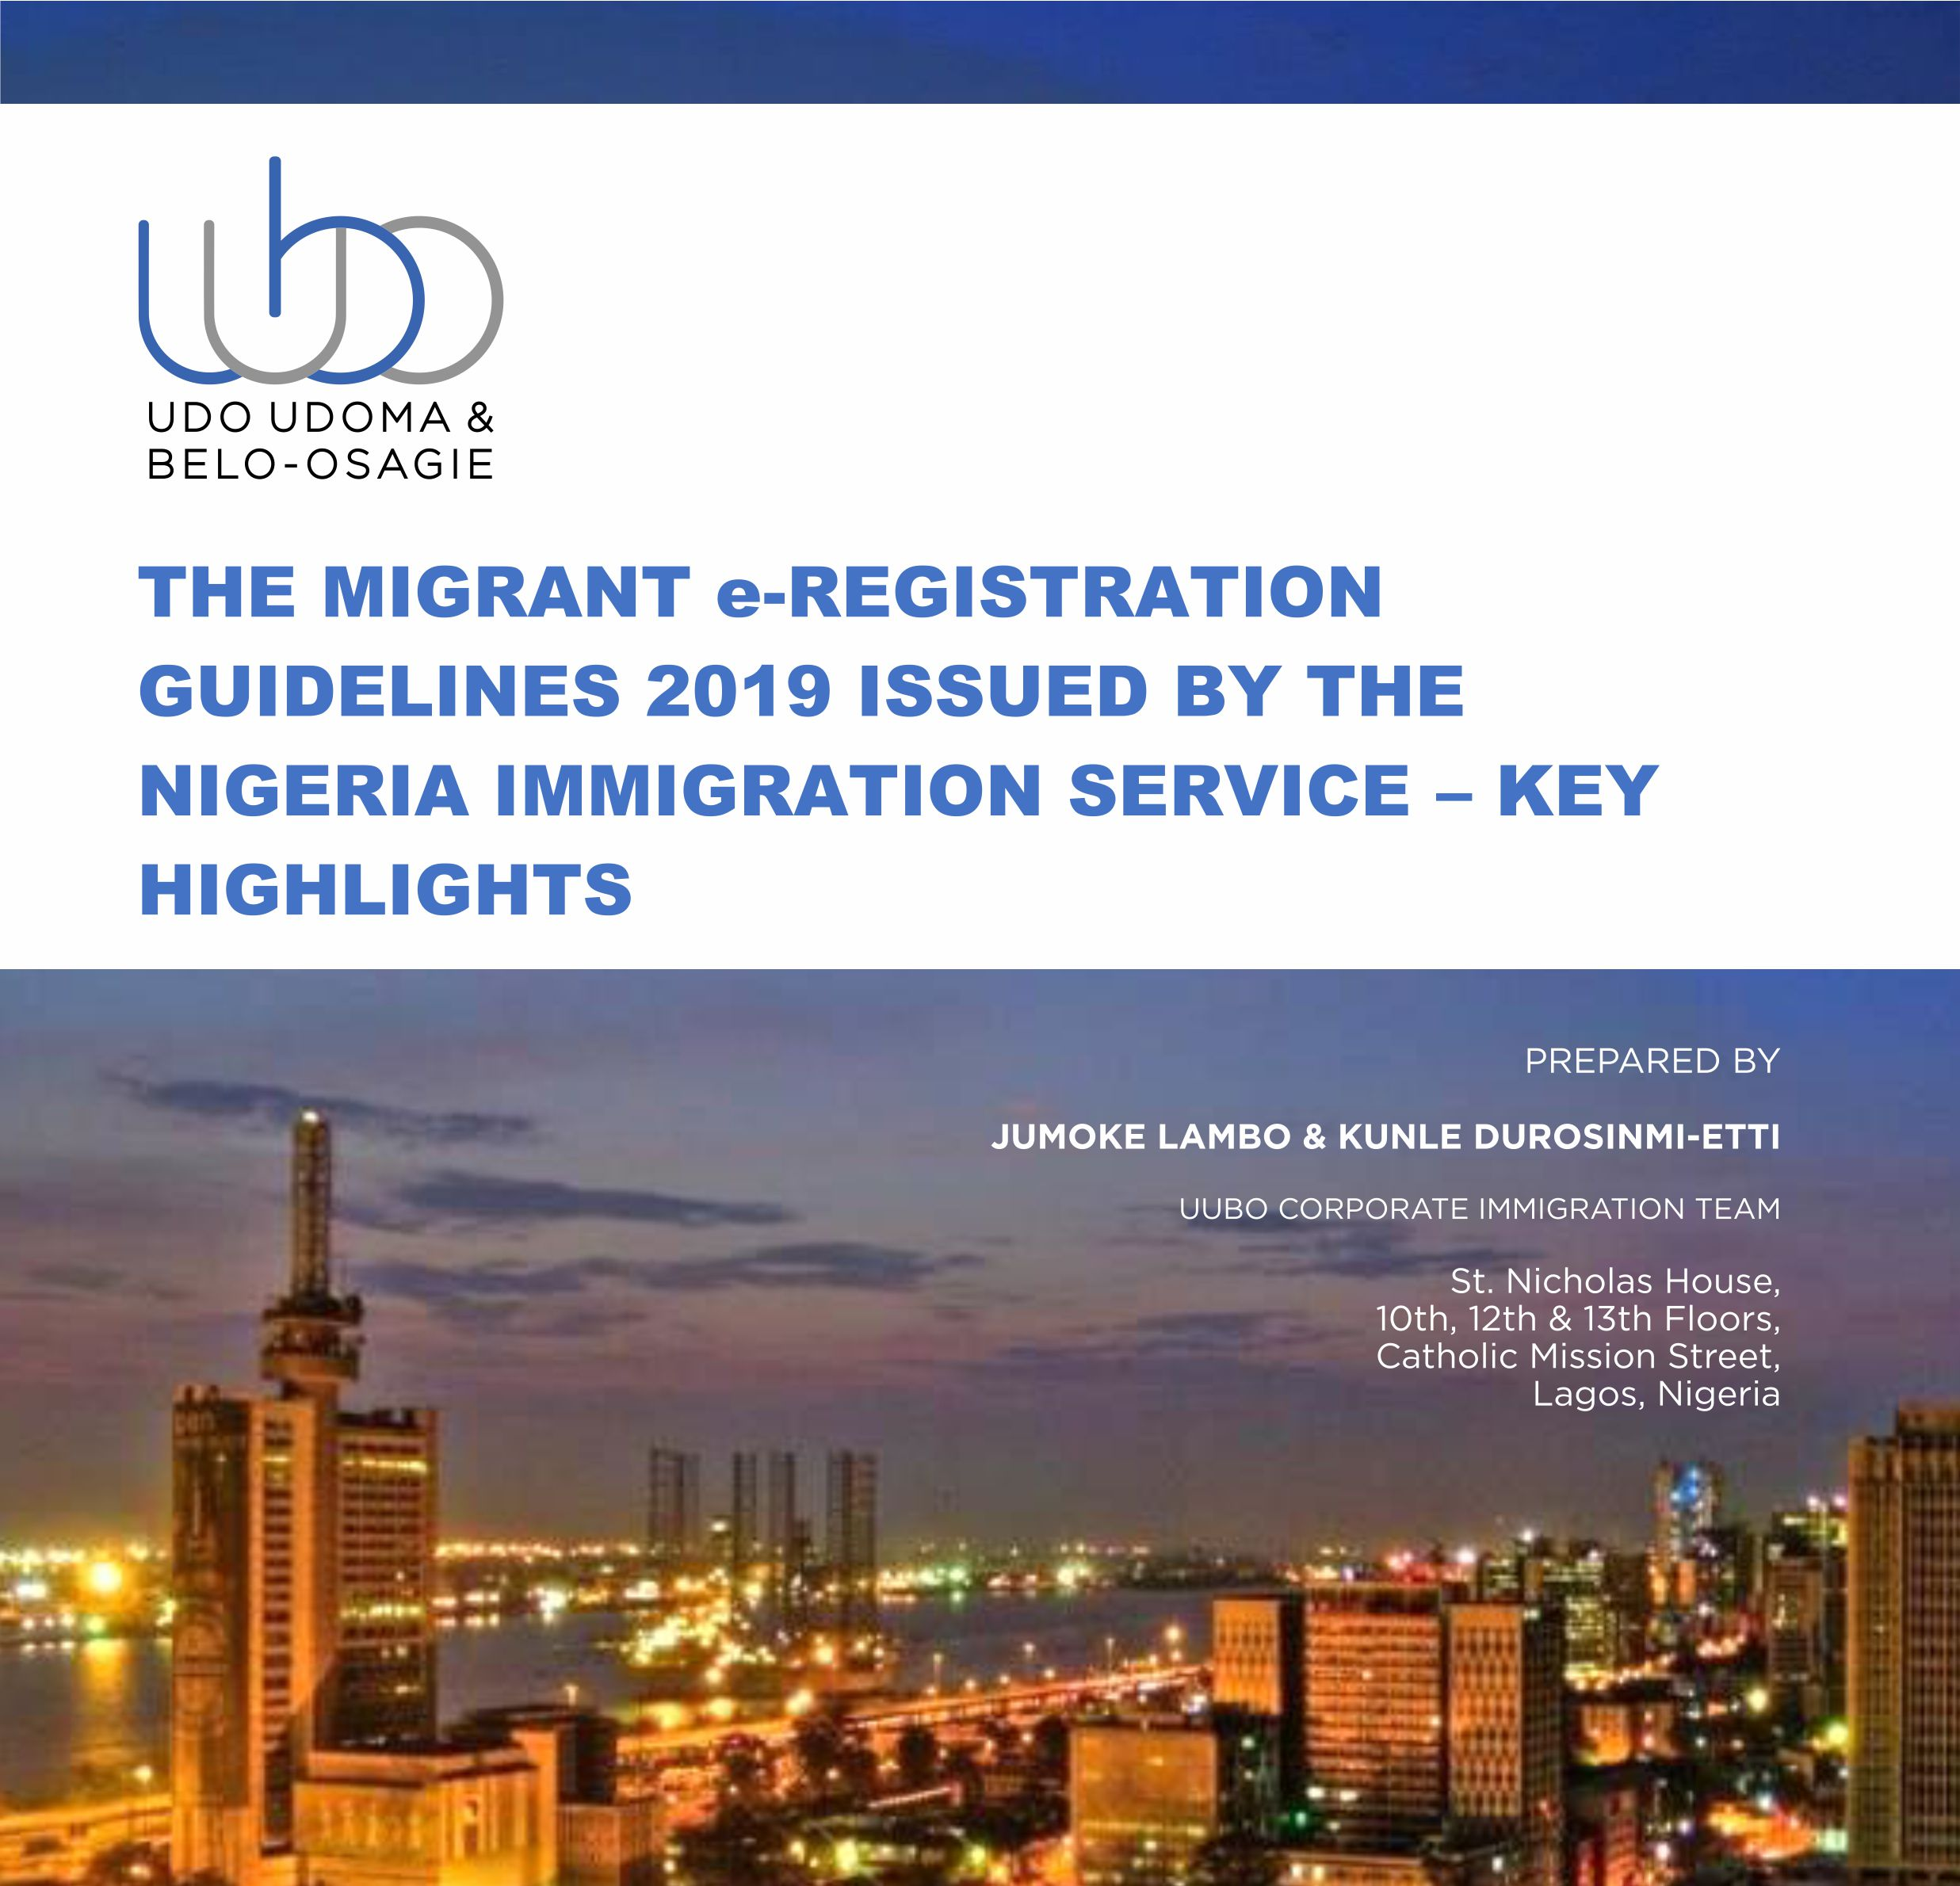 THE MIGRANT e-REGISTRATION GUIDELINES 2019 ISSUED BY THE NIGERIA IMMIGRATION SERVICE – KEY HIGHLIGHTS